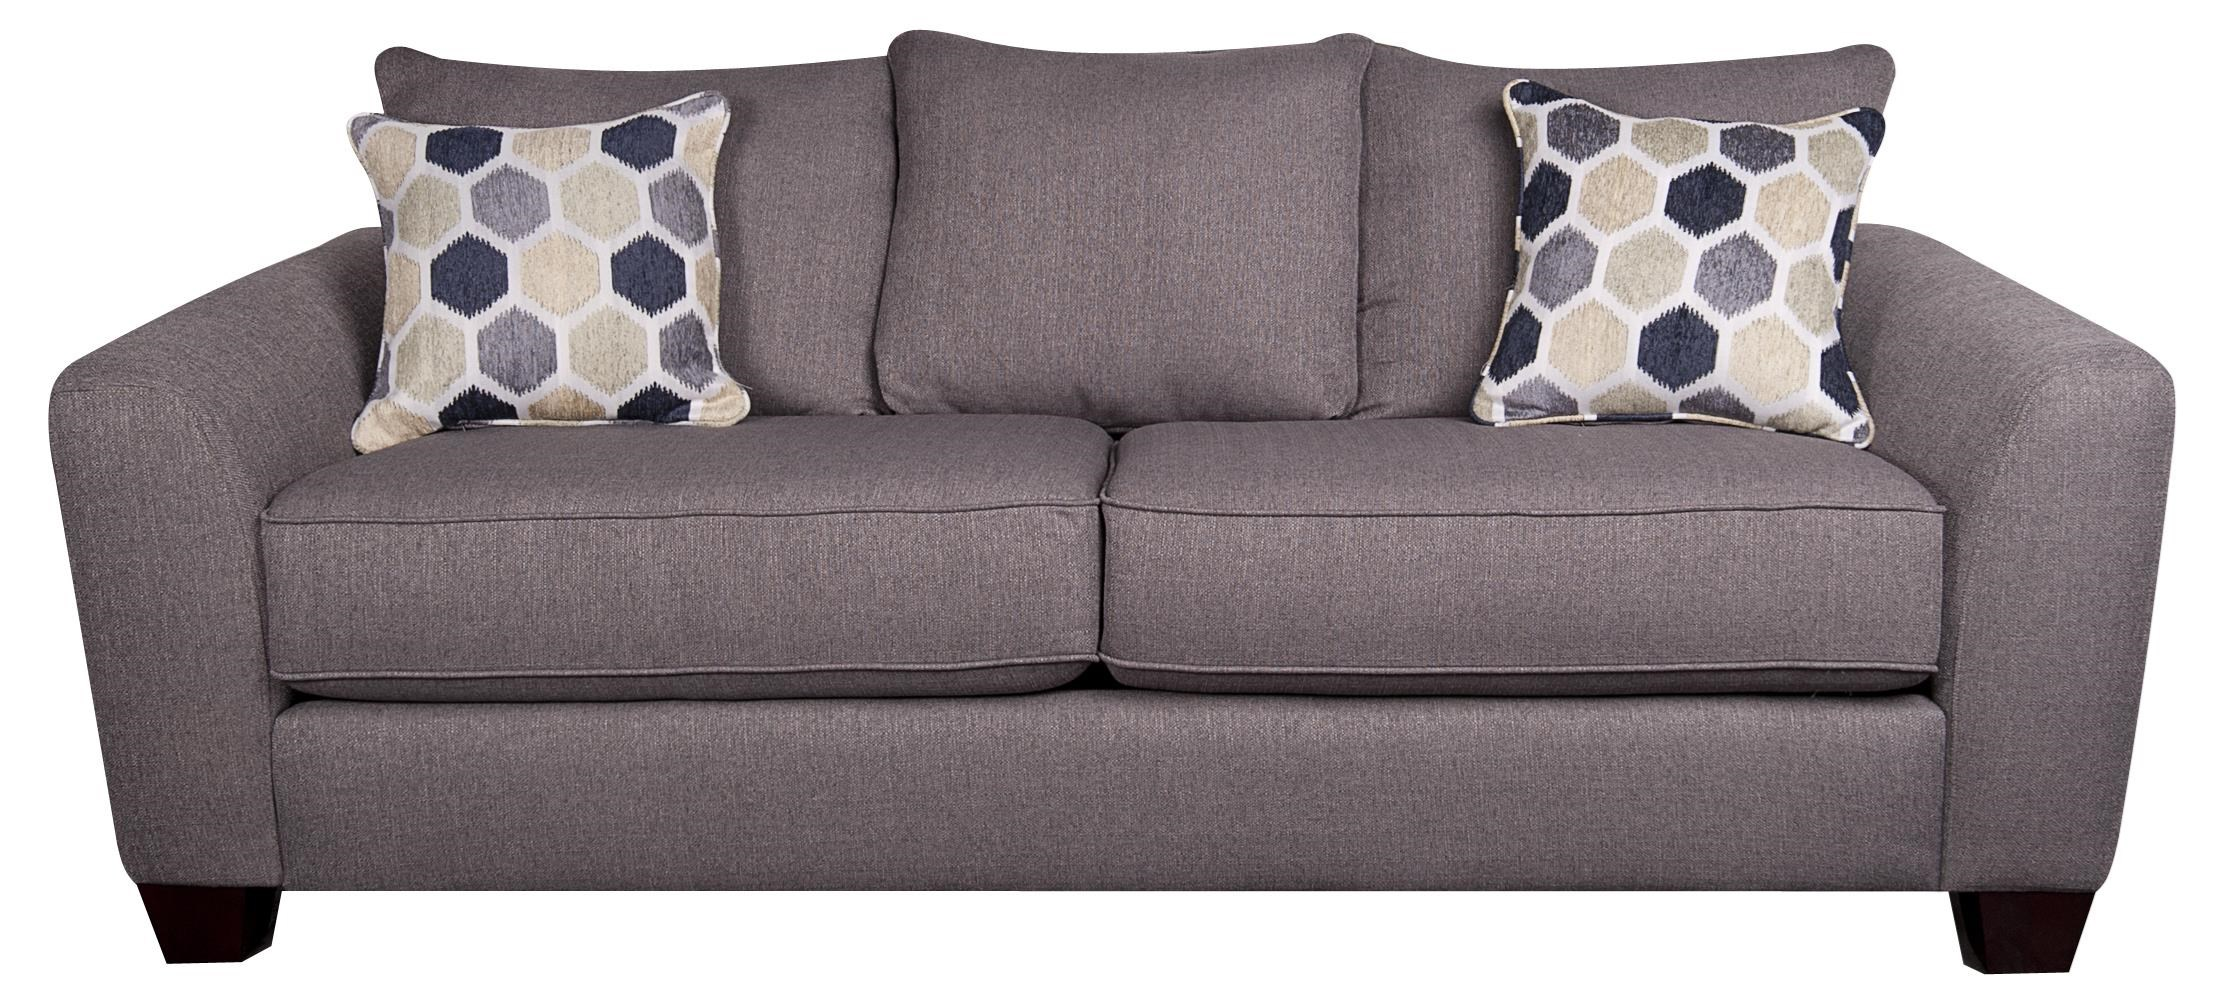 Morris Home Remedy Remedy Sofa - Item Number: 132033555